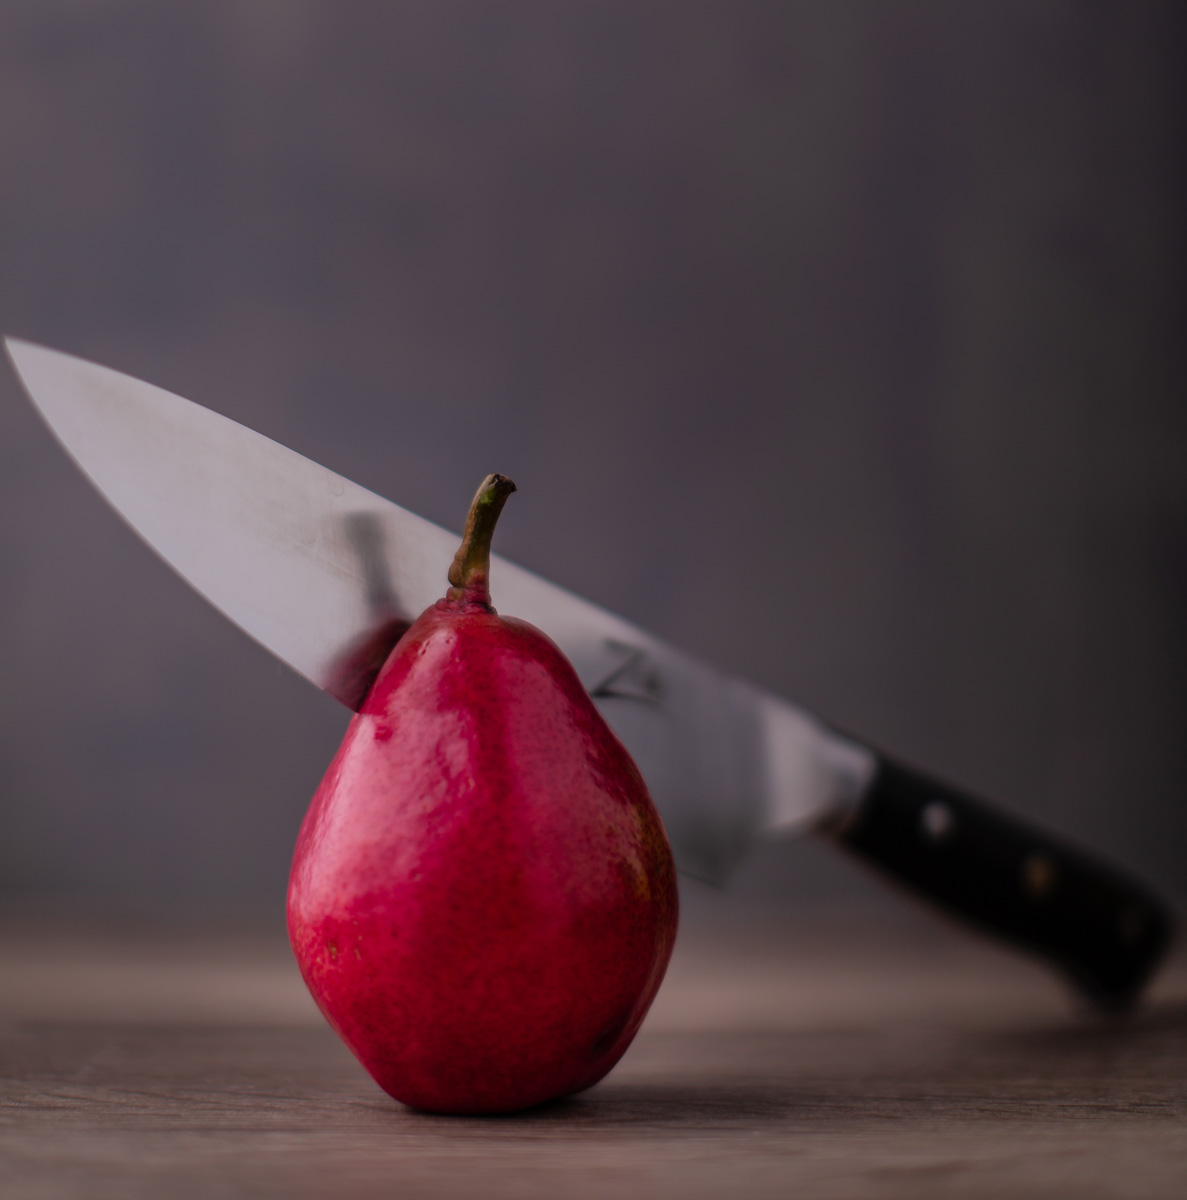 chef knife in pear